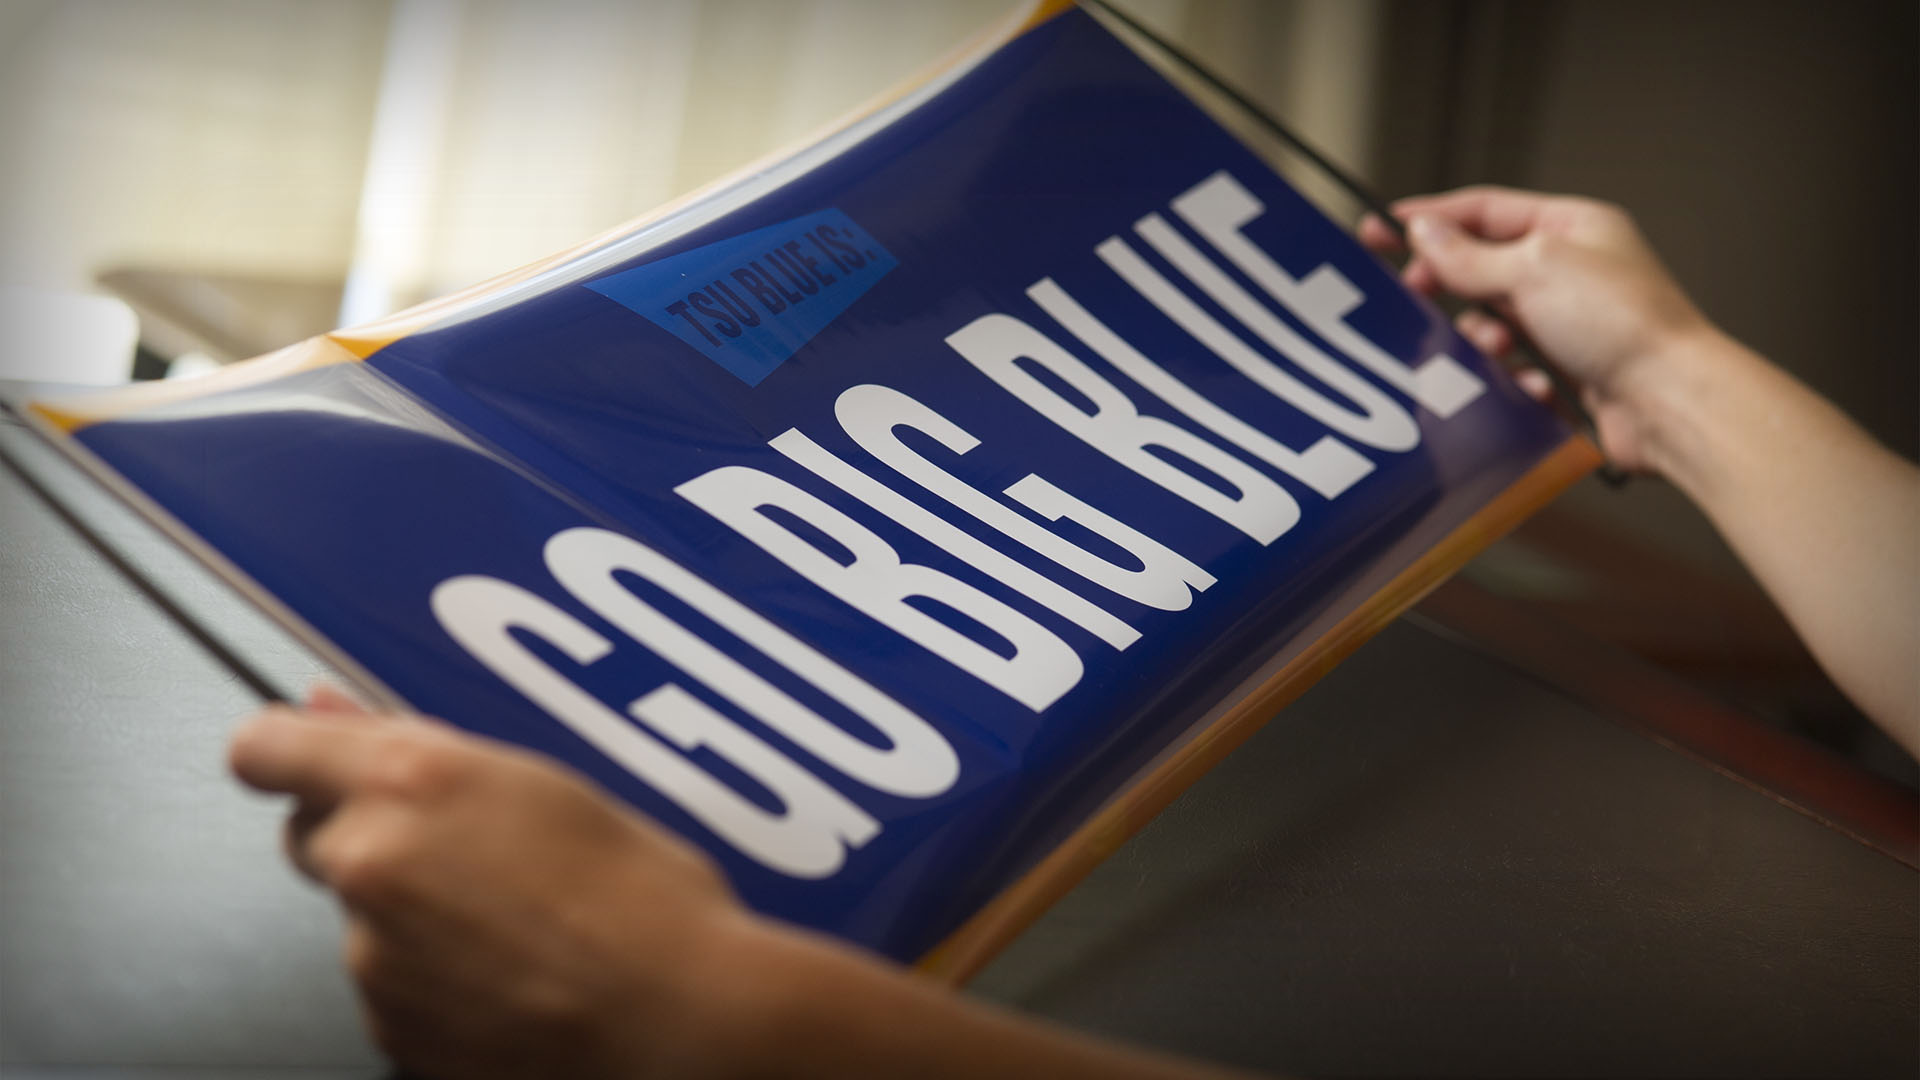 Tennessee-State-University-Branding-Marketing-Admissions-Rollabana-4.jpg